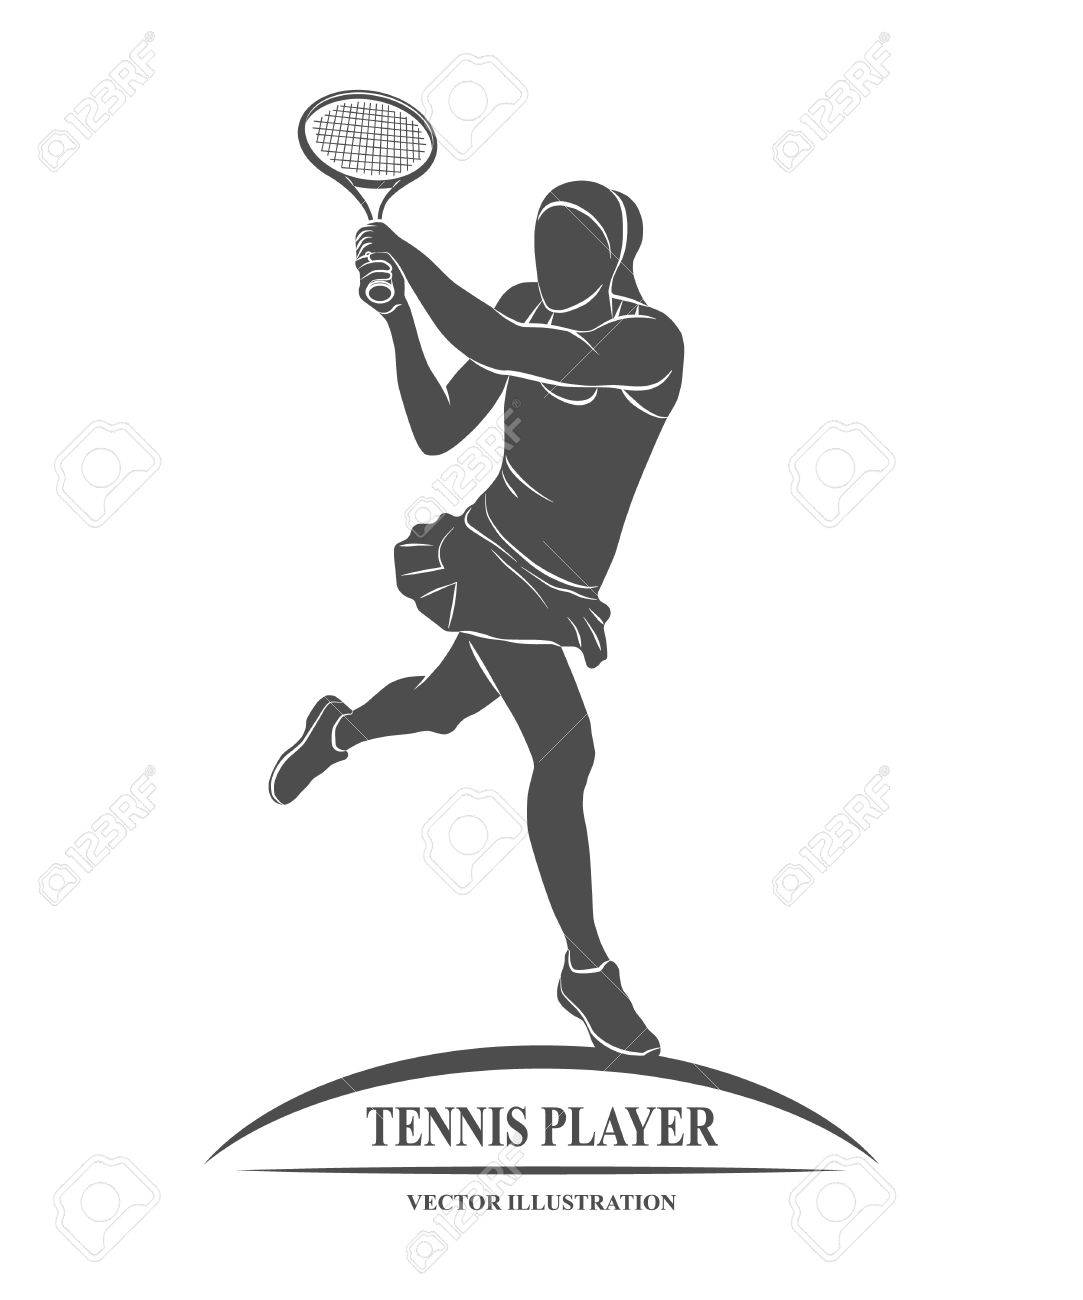 Icon tennis player with a racket. illustration. - 59784799